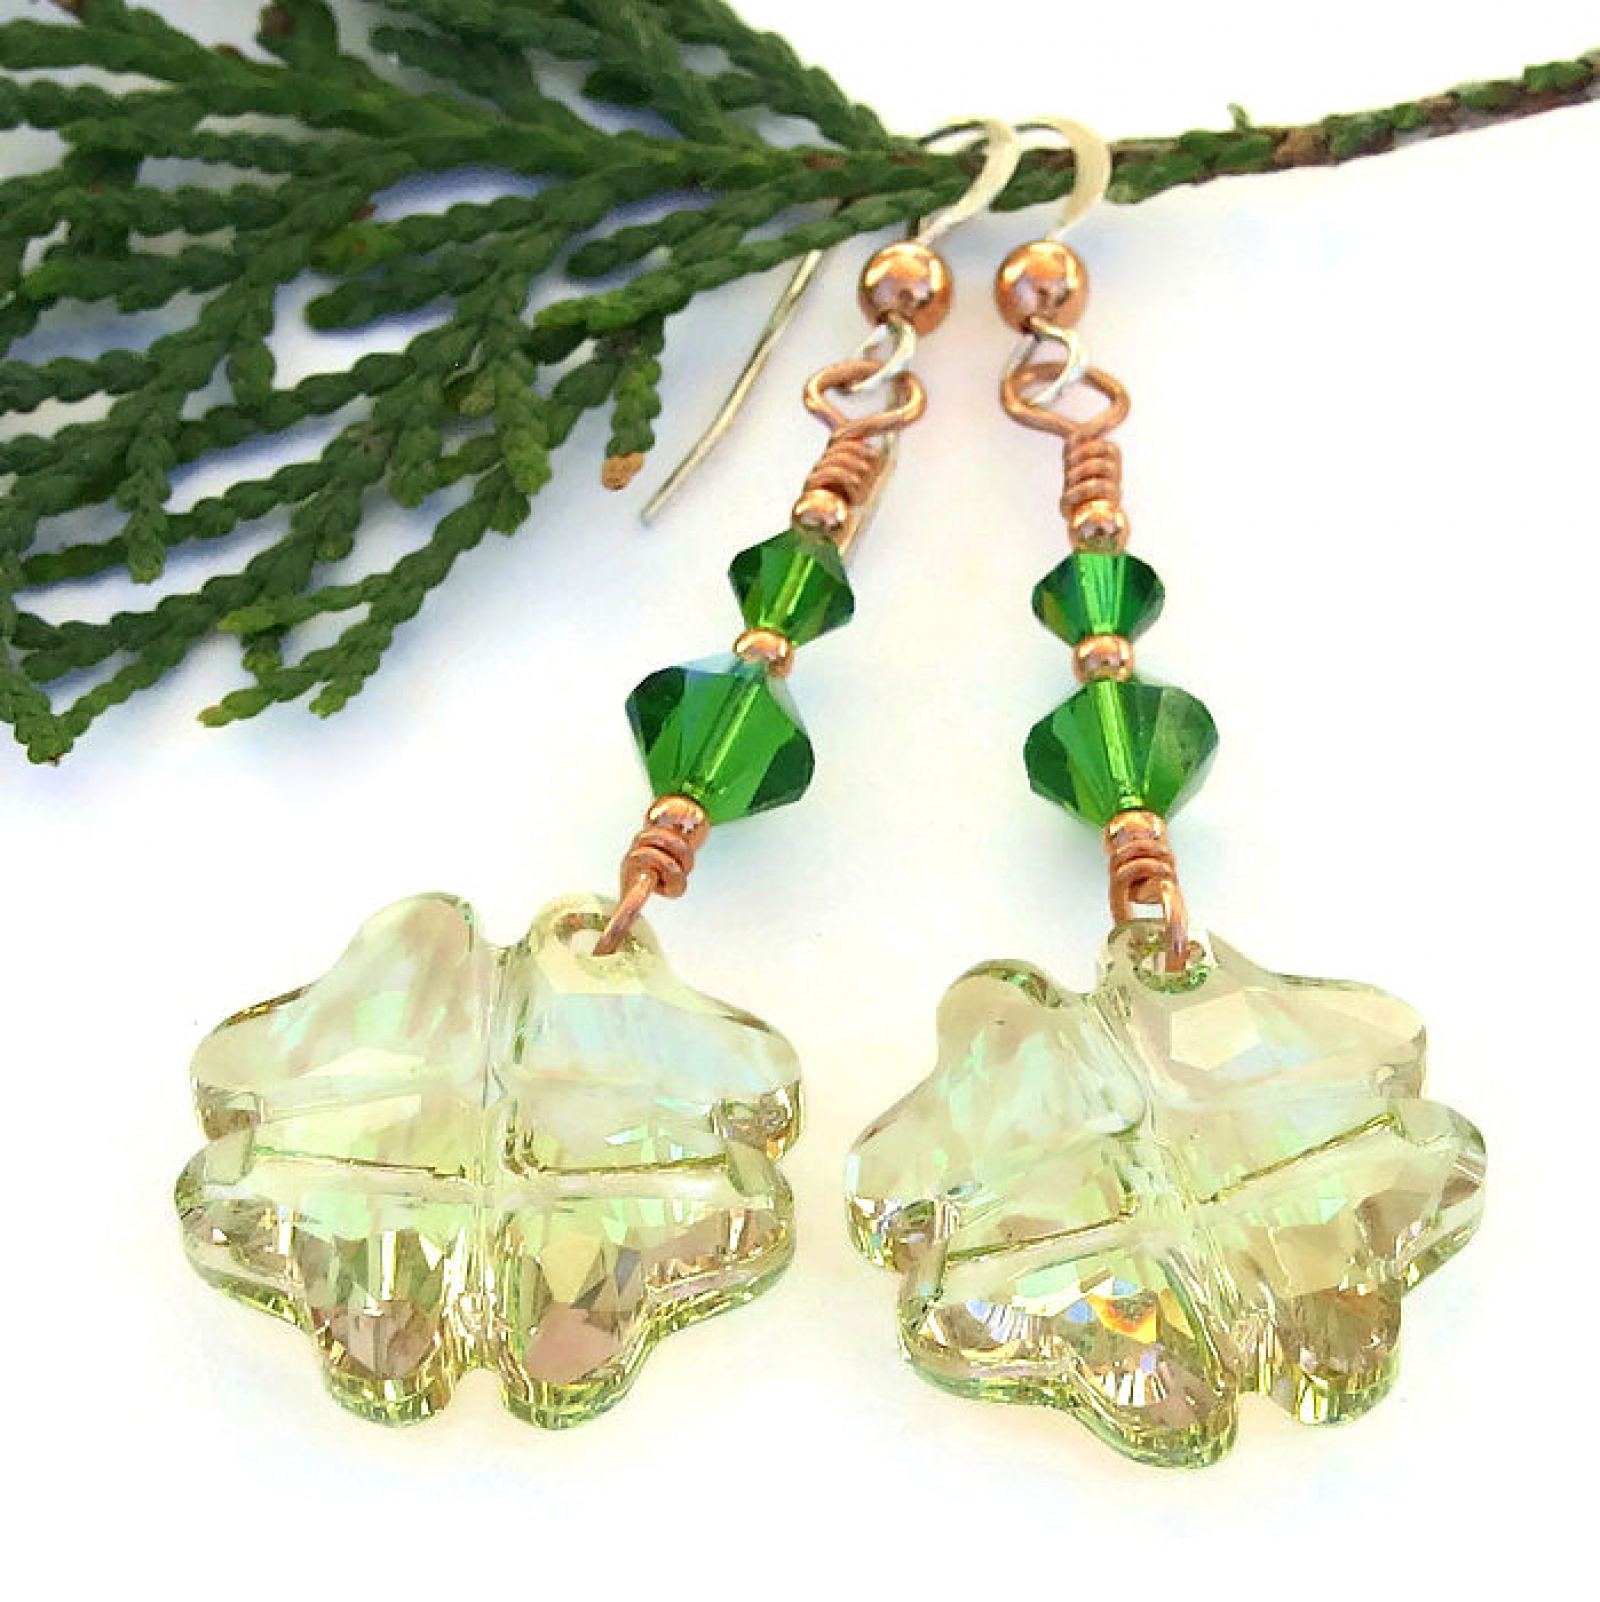 512b715674e591 ... crystal earrings  Lucky four leaf clover jewelry gift idea for her ...